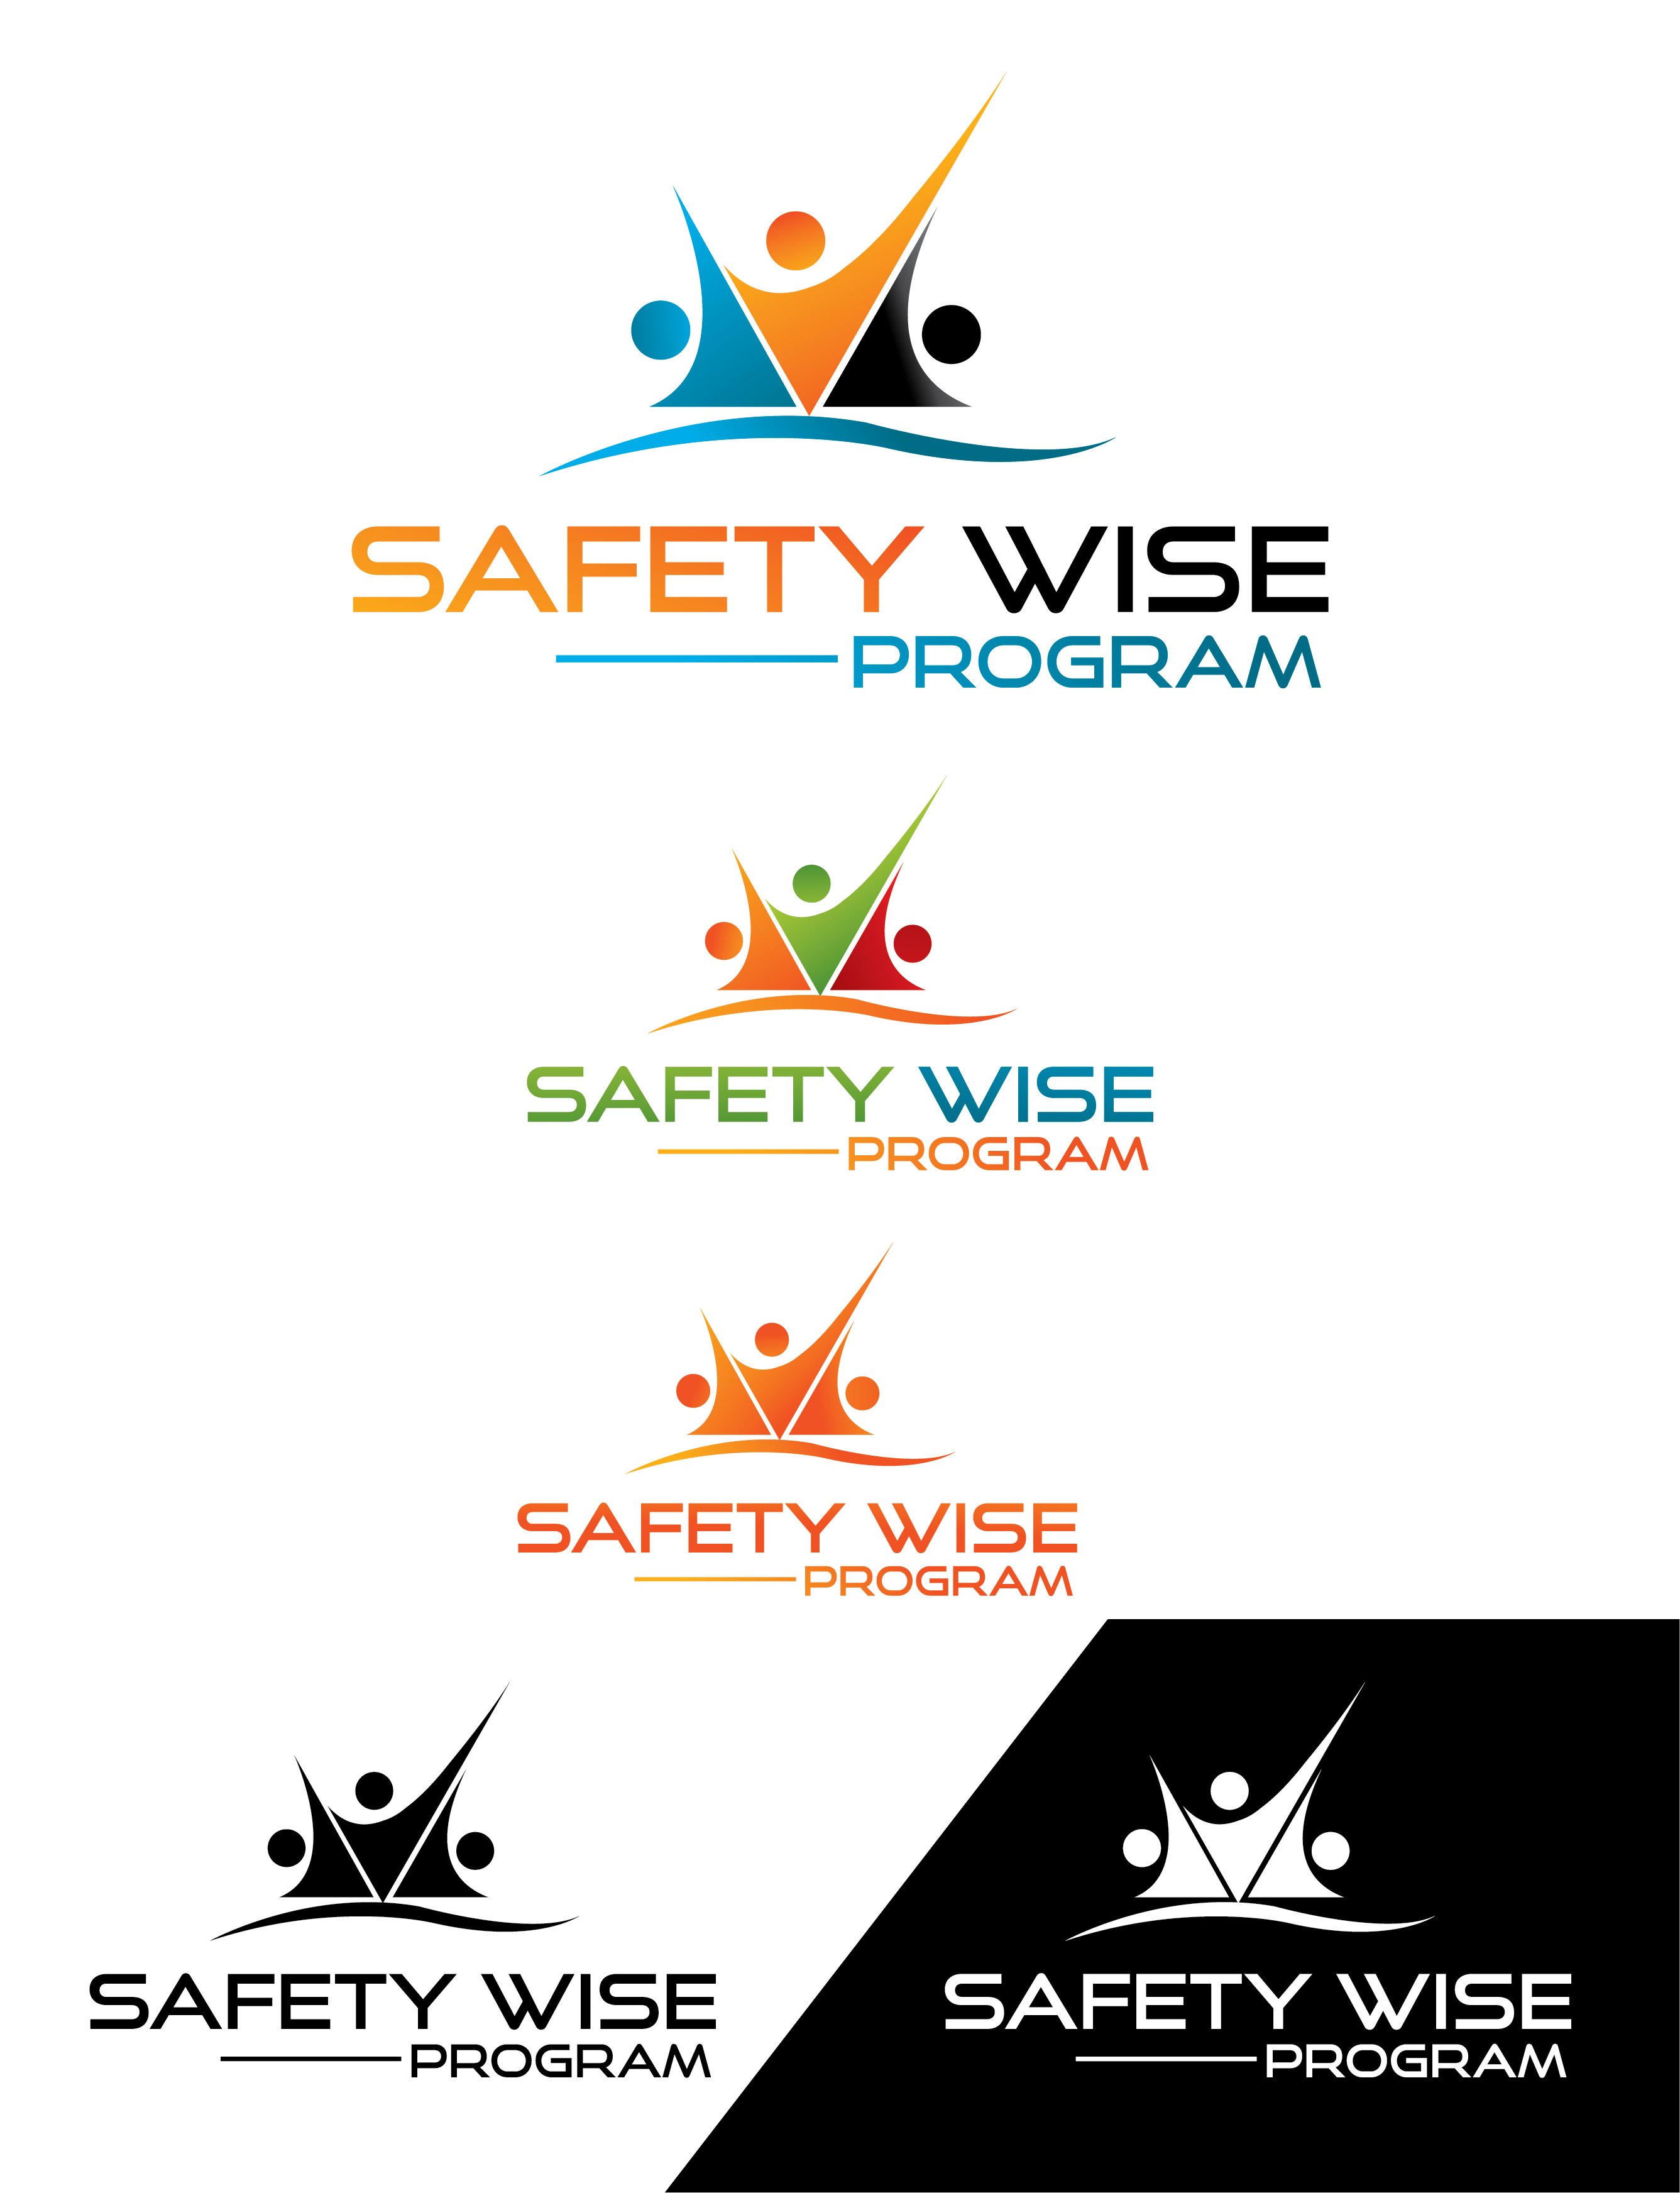 Logo Design by Prohor Ghagra - Entry No. 209 in the Logo Design Contest New Logo Design for Safety Wise Program.